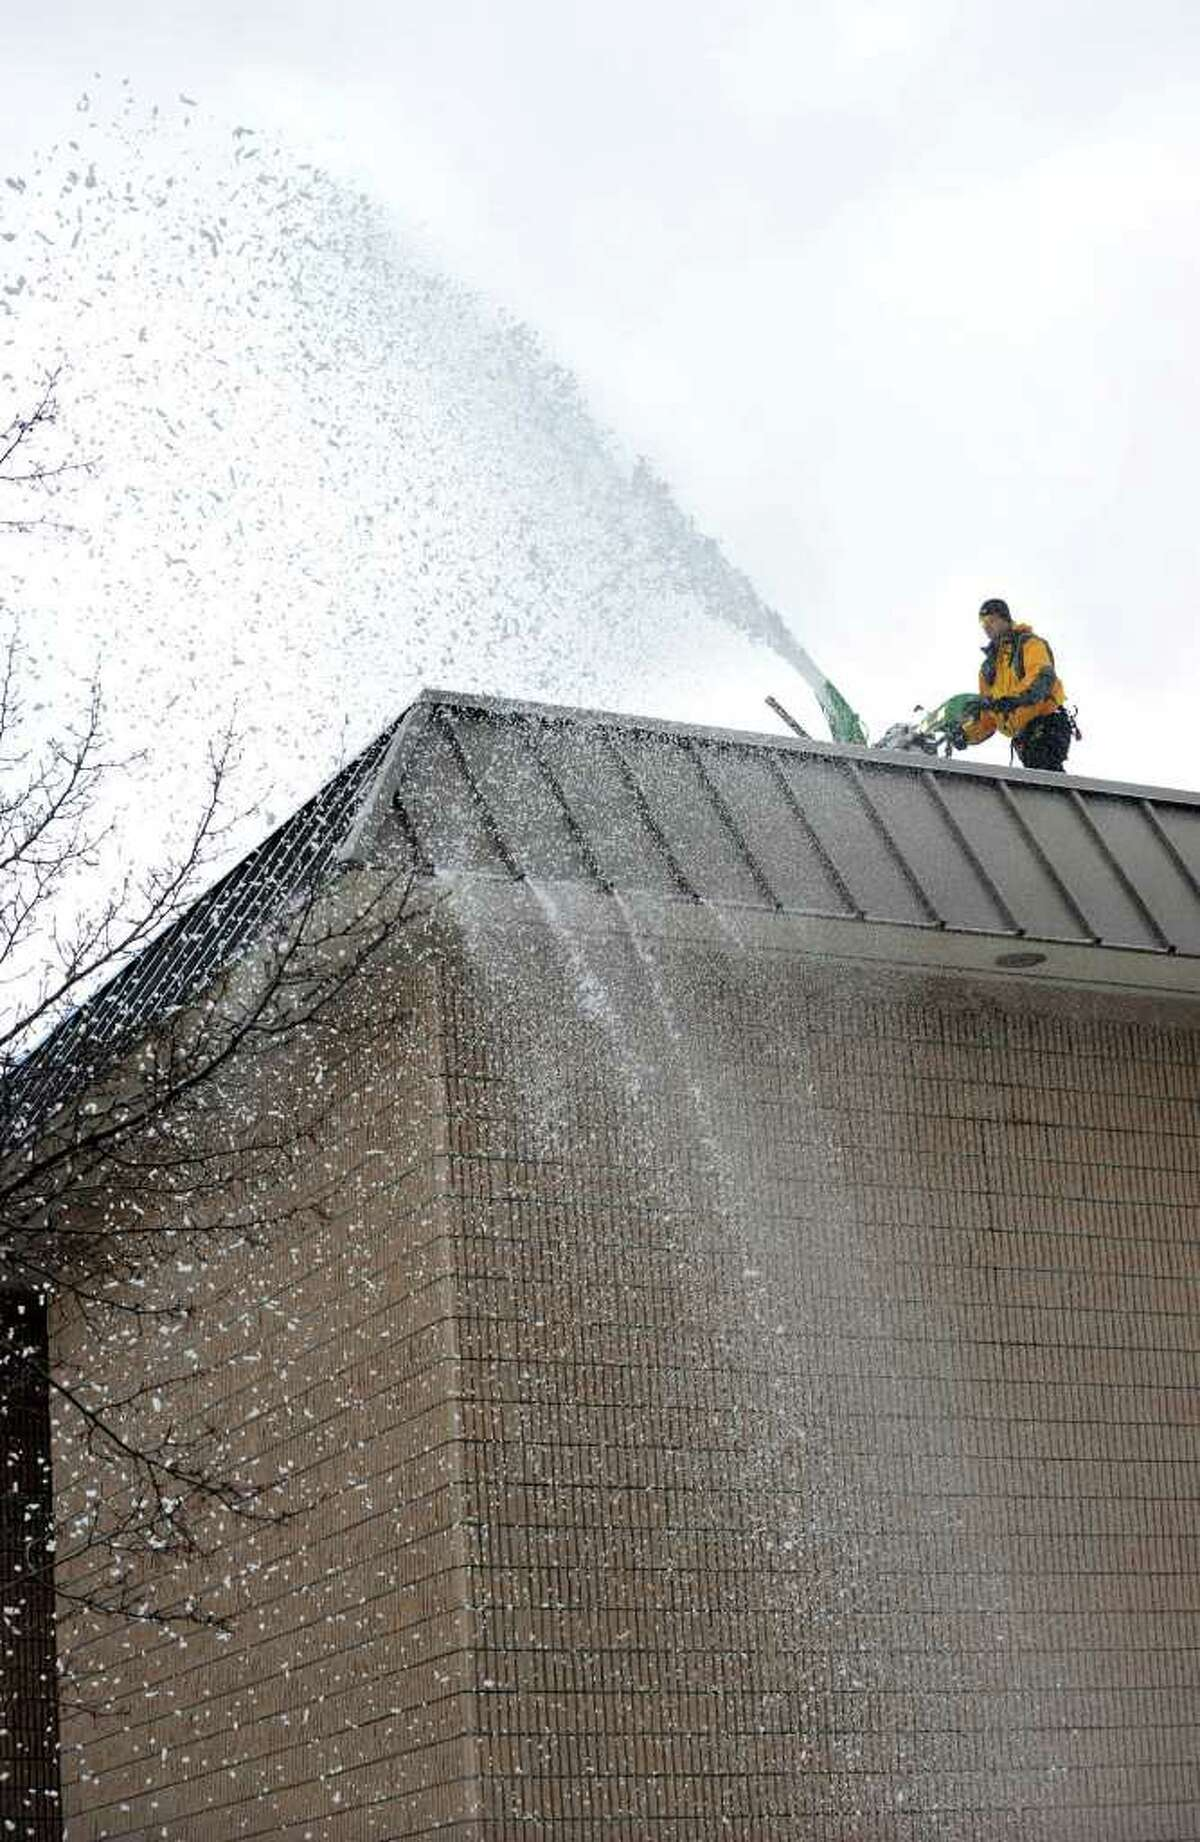 Joe Quaranta of Roxbury uses a snowblower on the roof of Schaghticoke Middle School in New Milford Tuesday, February 8, 2011.